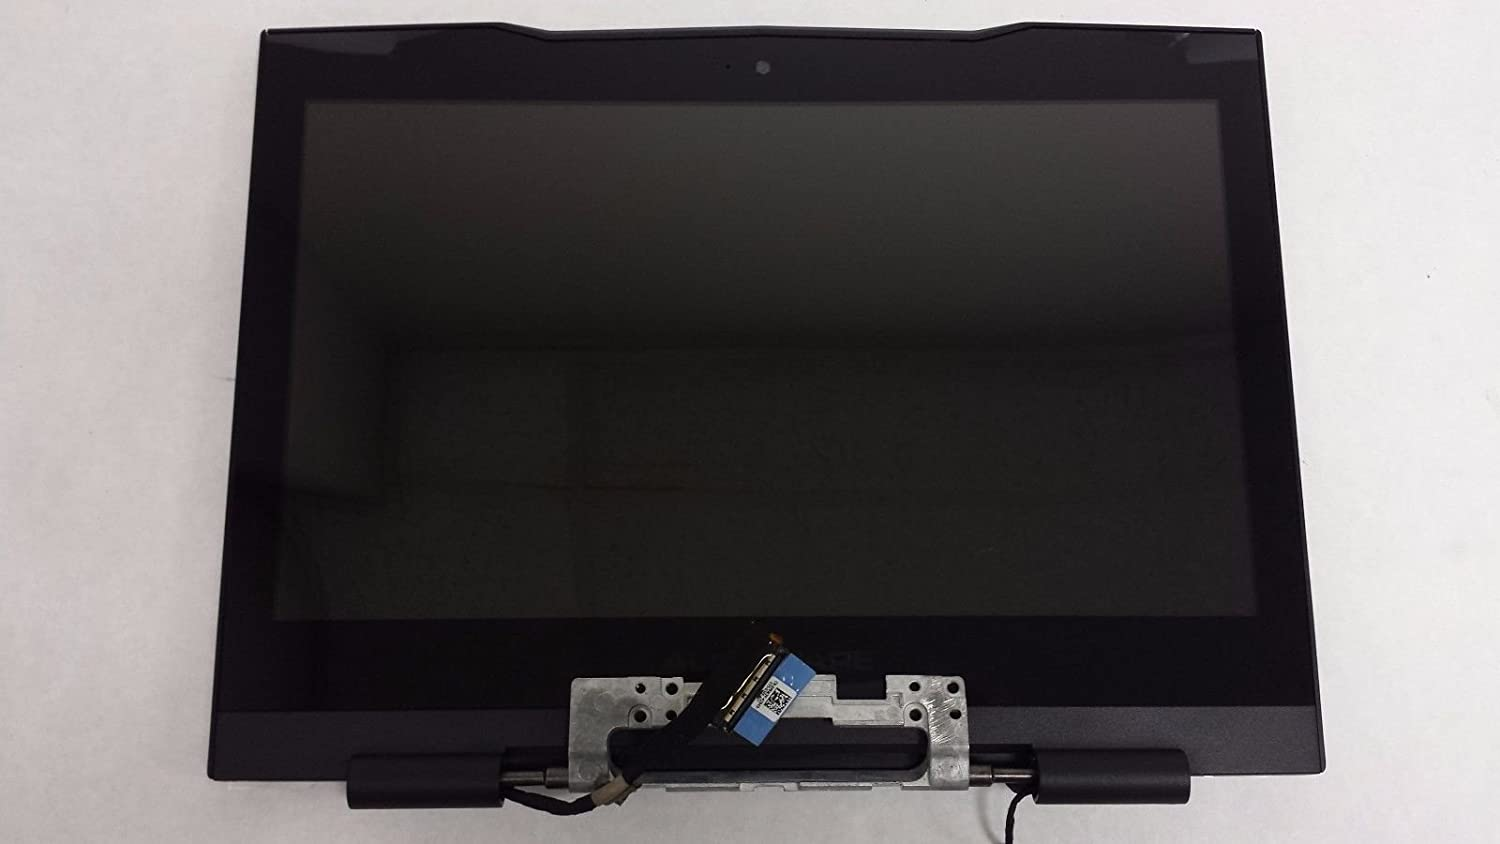 R2Y7G - Black - Dell Alienware M11x/M11xR2/M11xR3 LCD Screen Display Complete Assembly with Web Camera - R2Y7G Dell Computers